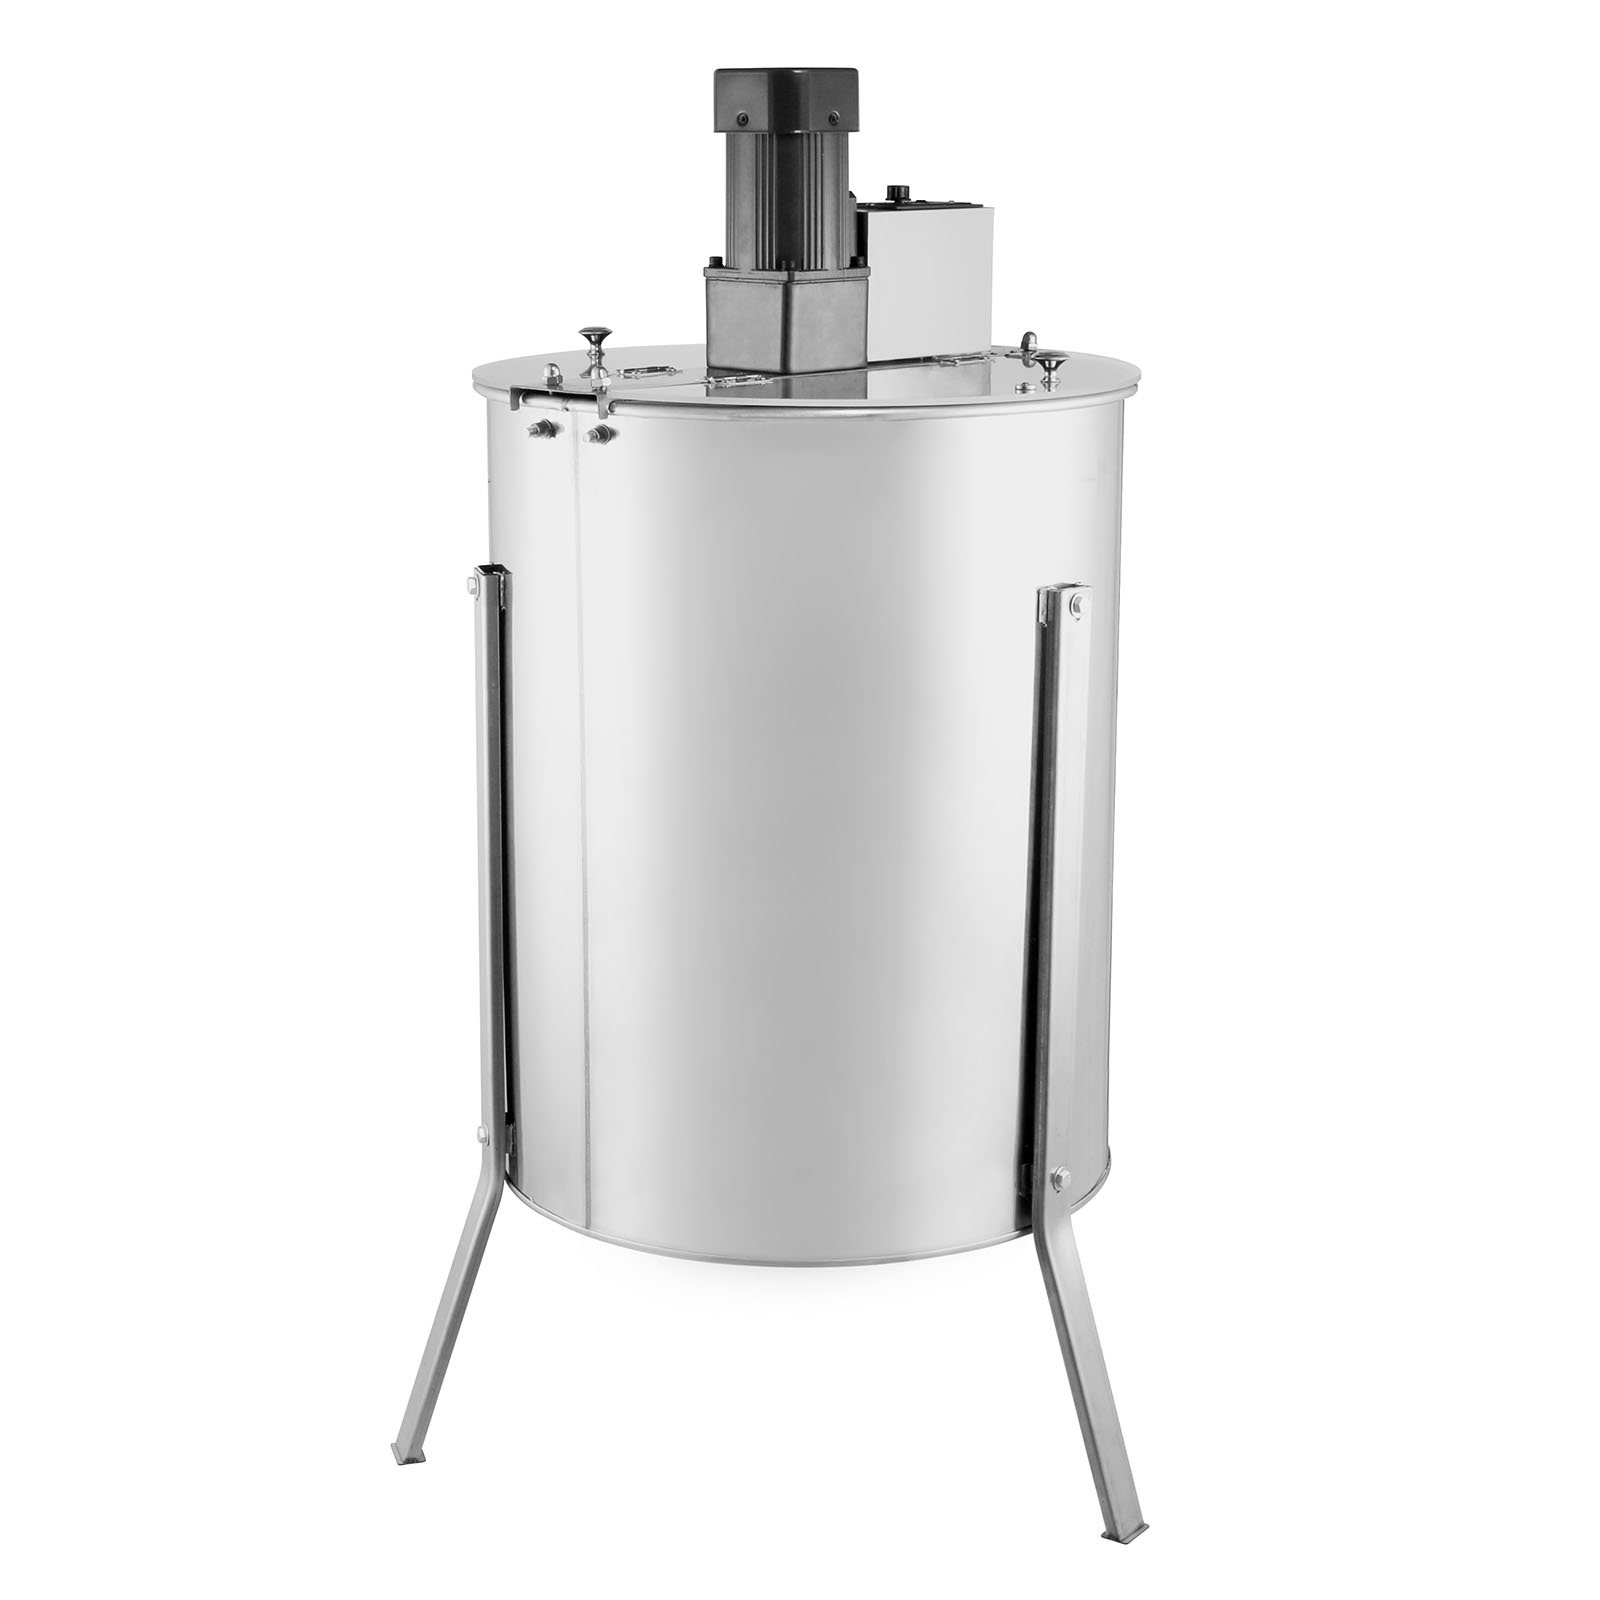 FoodKing Honey Extractor Electric Honey Extractor Honeycomb Spinner 4 Frame Stainless Steel Electric Beekeeping Supply Beehive Processing (4 Frame Electric Honey Extractor)